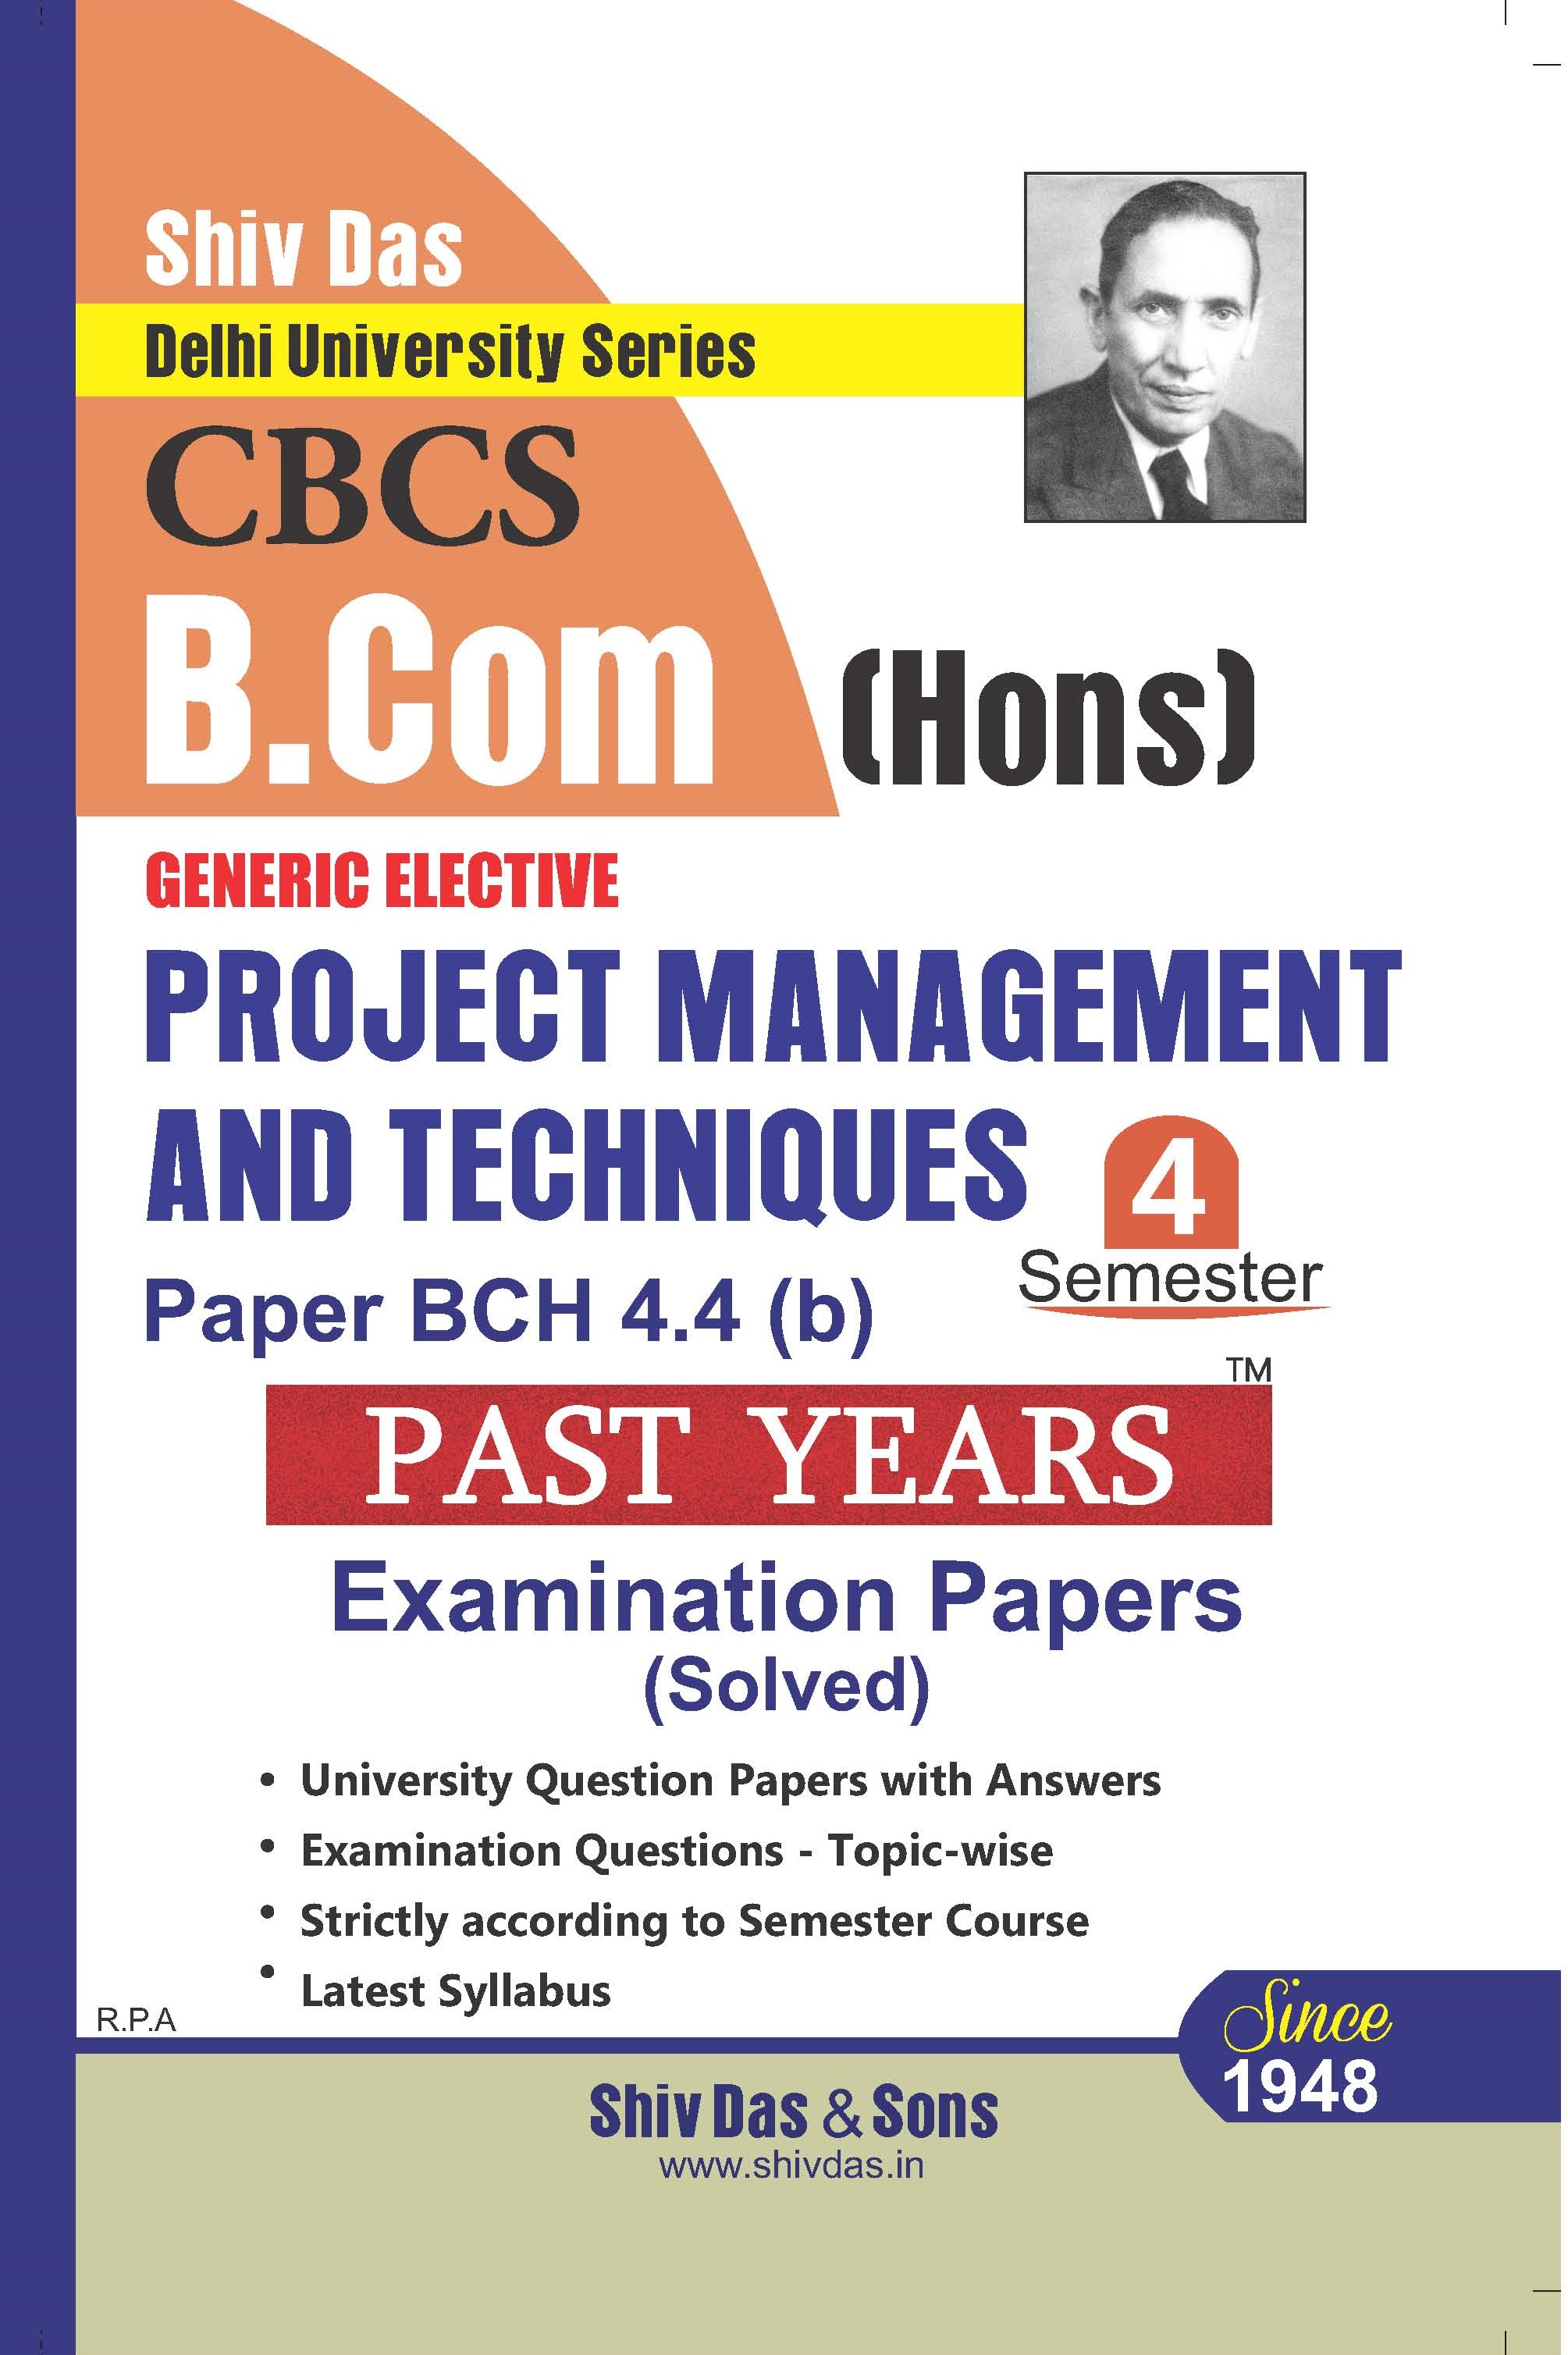 Project Management and Techniques for B.Com Hons Semester-4 for Delhi University by Shiv Das